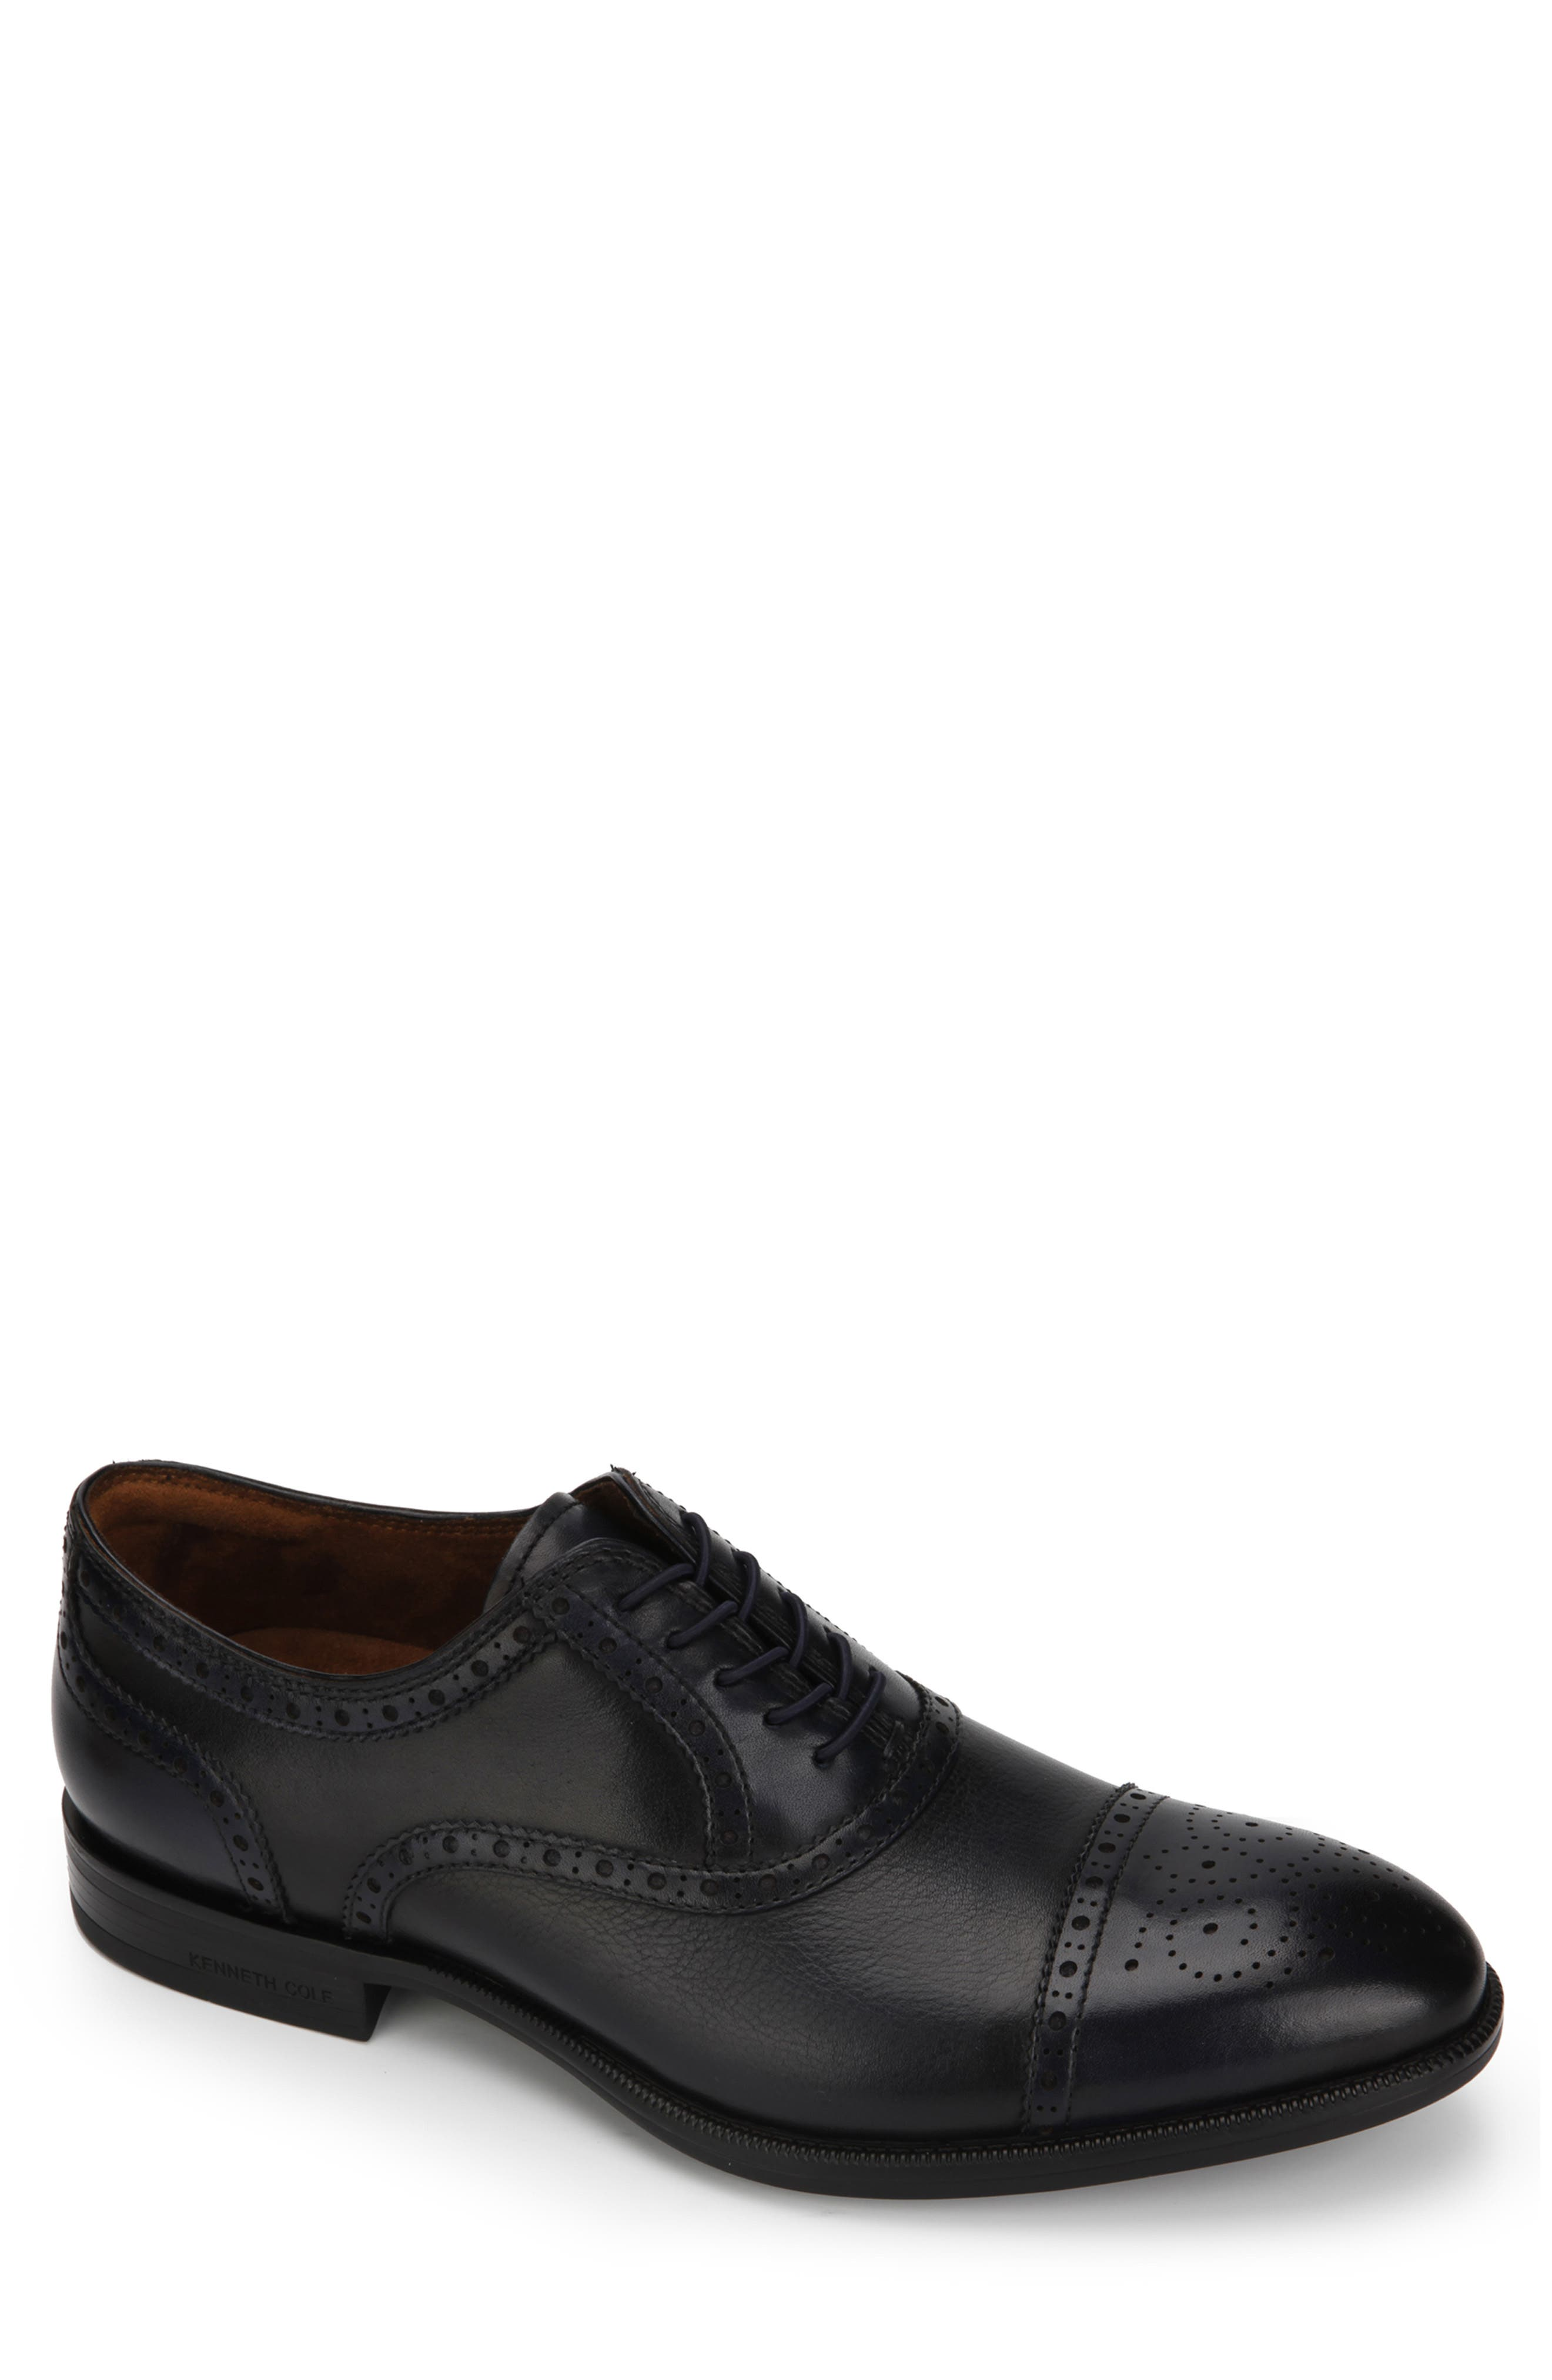 KENNETH COLE NEW YORK, Futurepod Cap Toe Oxford, Main thumbnail 1, color, NAVY TUMBLED LEATHER